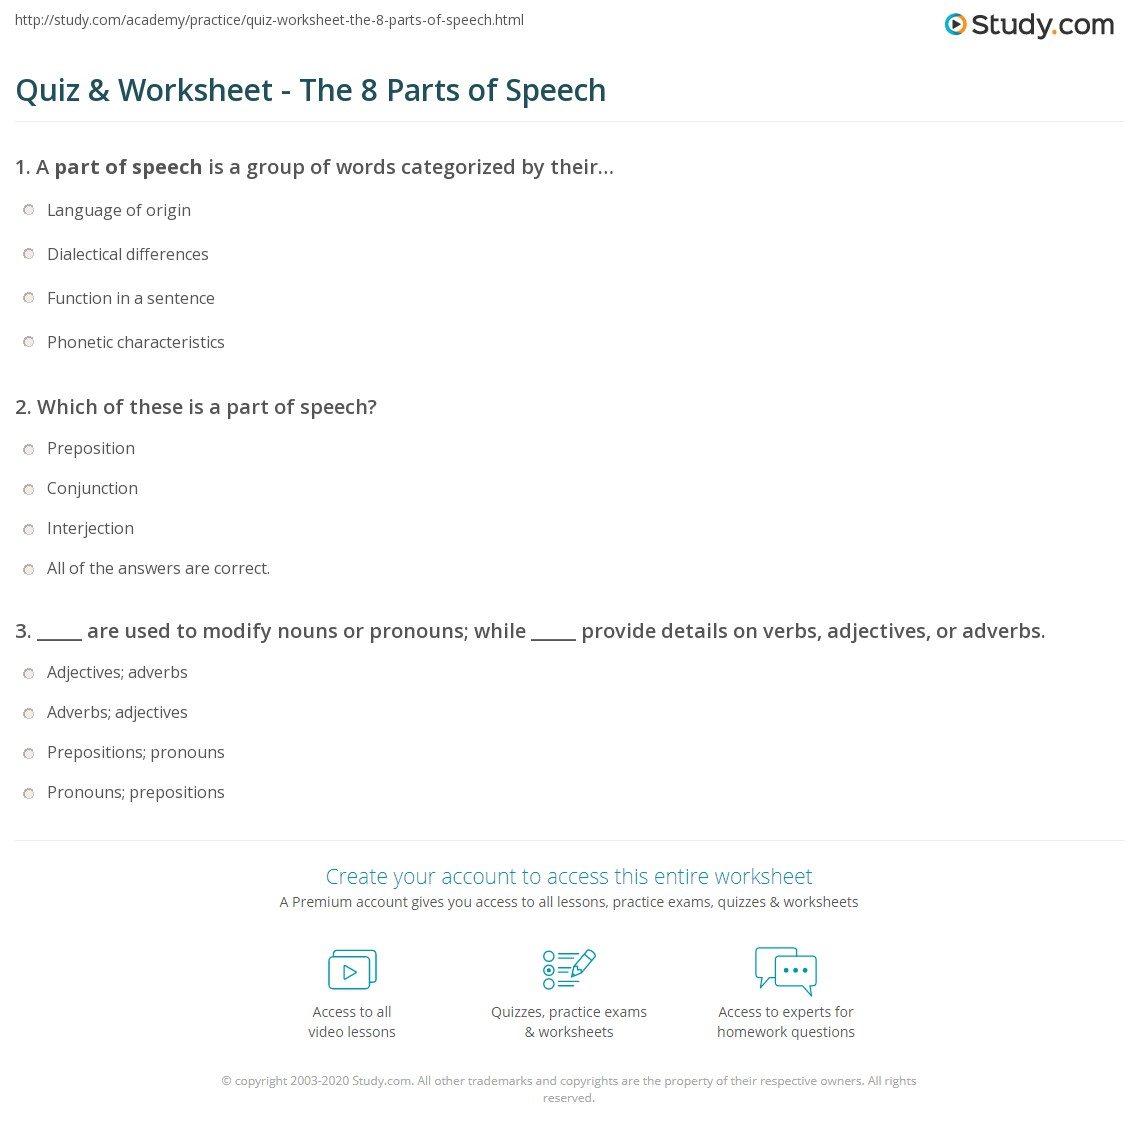 graphic regarding Part of Speech Quiz Printable named Quiz Worksheet - The 8 Sections of Speech